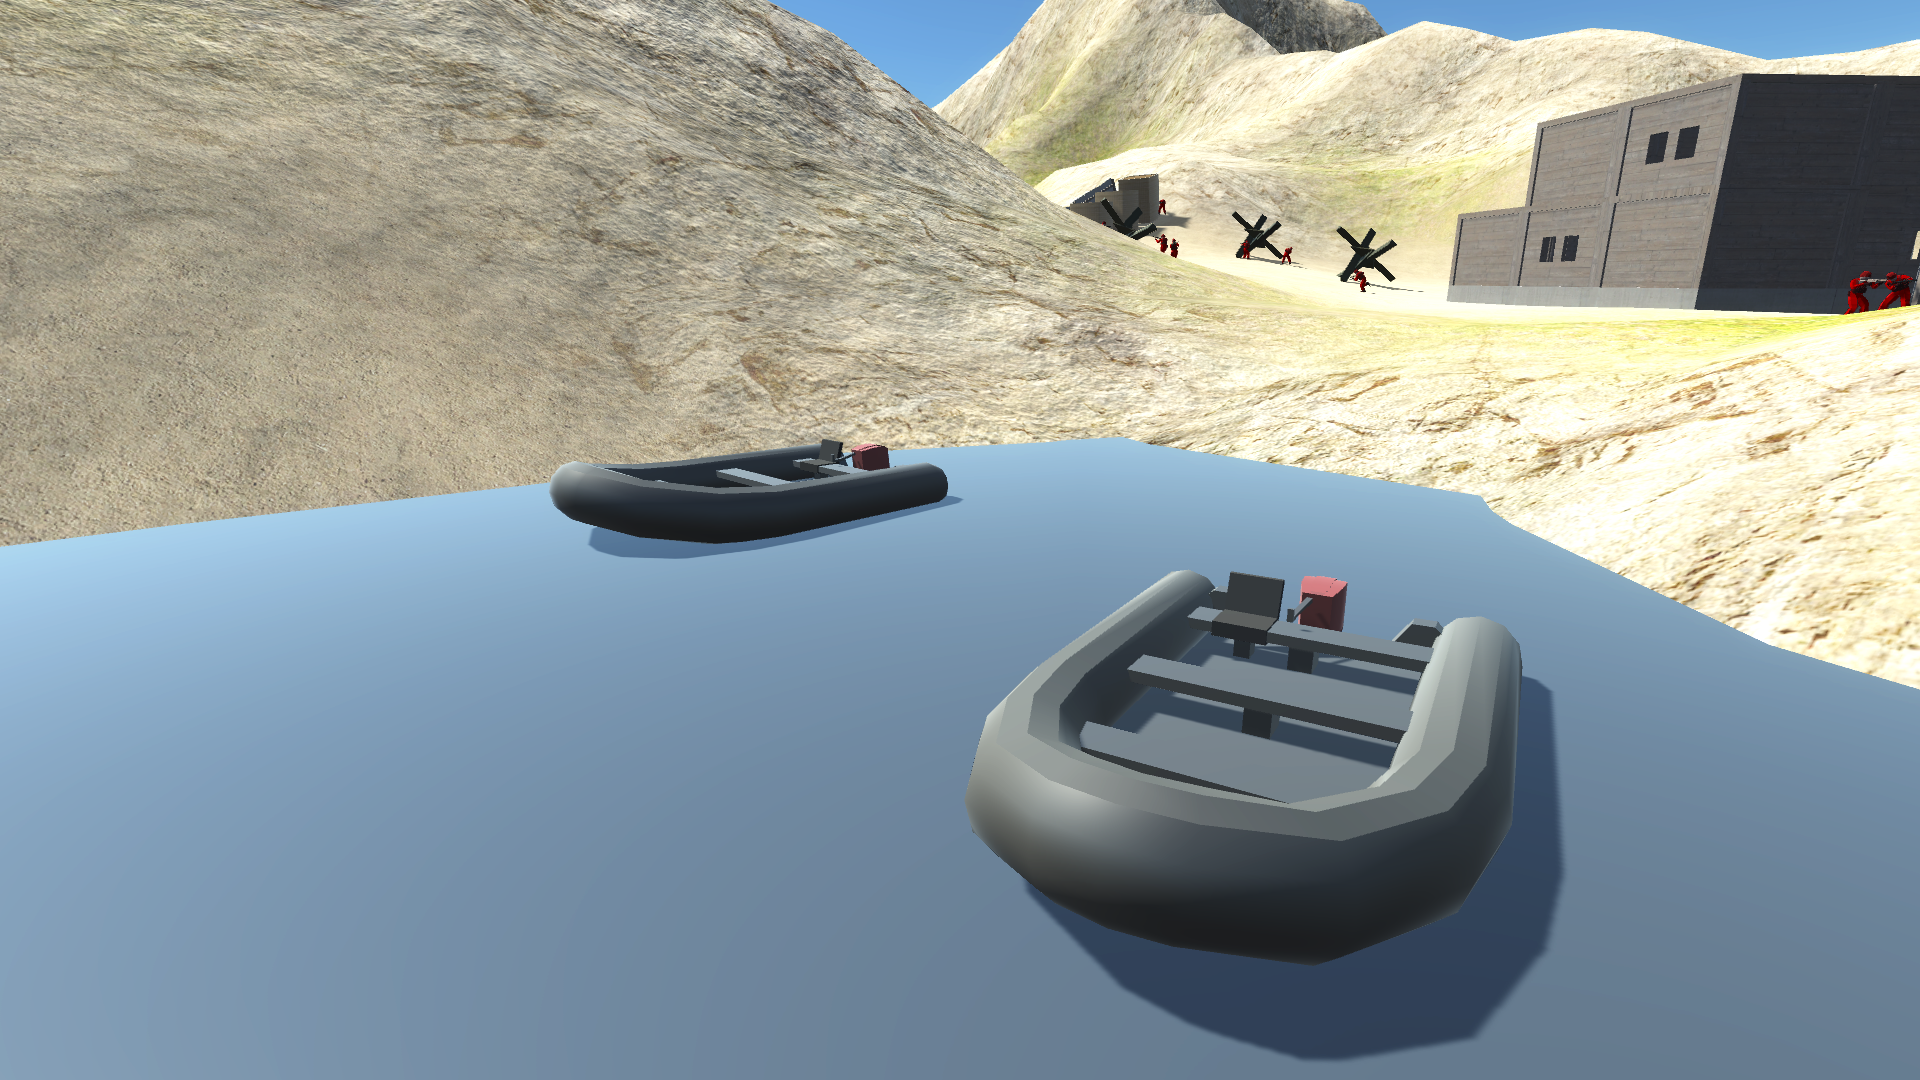 Rigid-hulled inflatable boat (RHIB) | Ravenfield Wiki